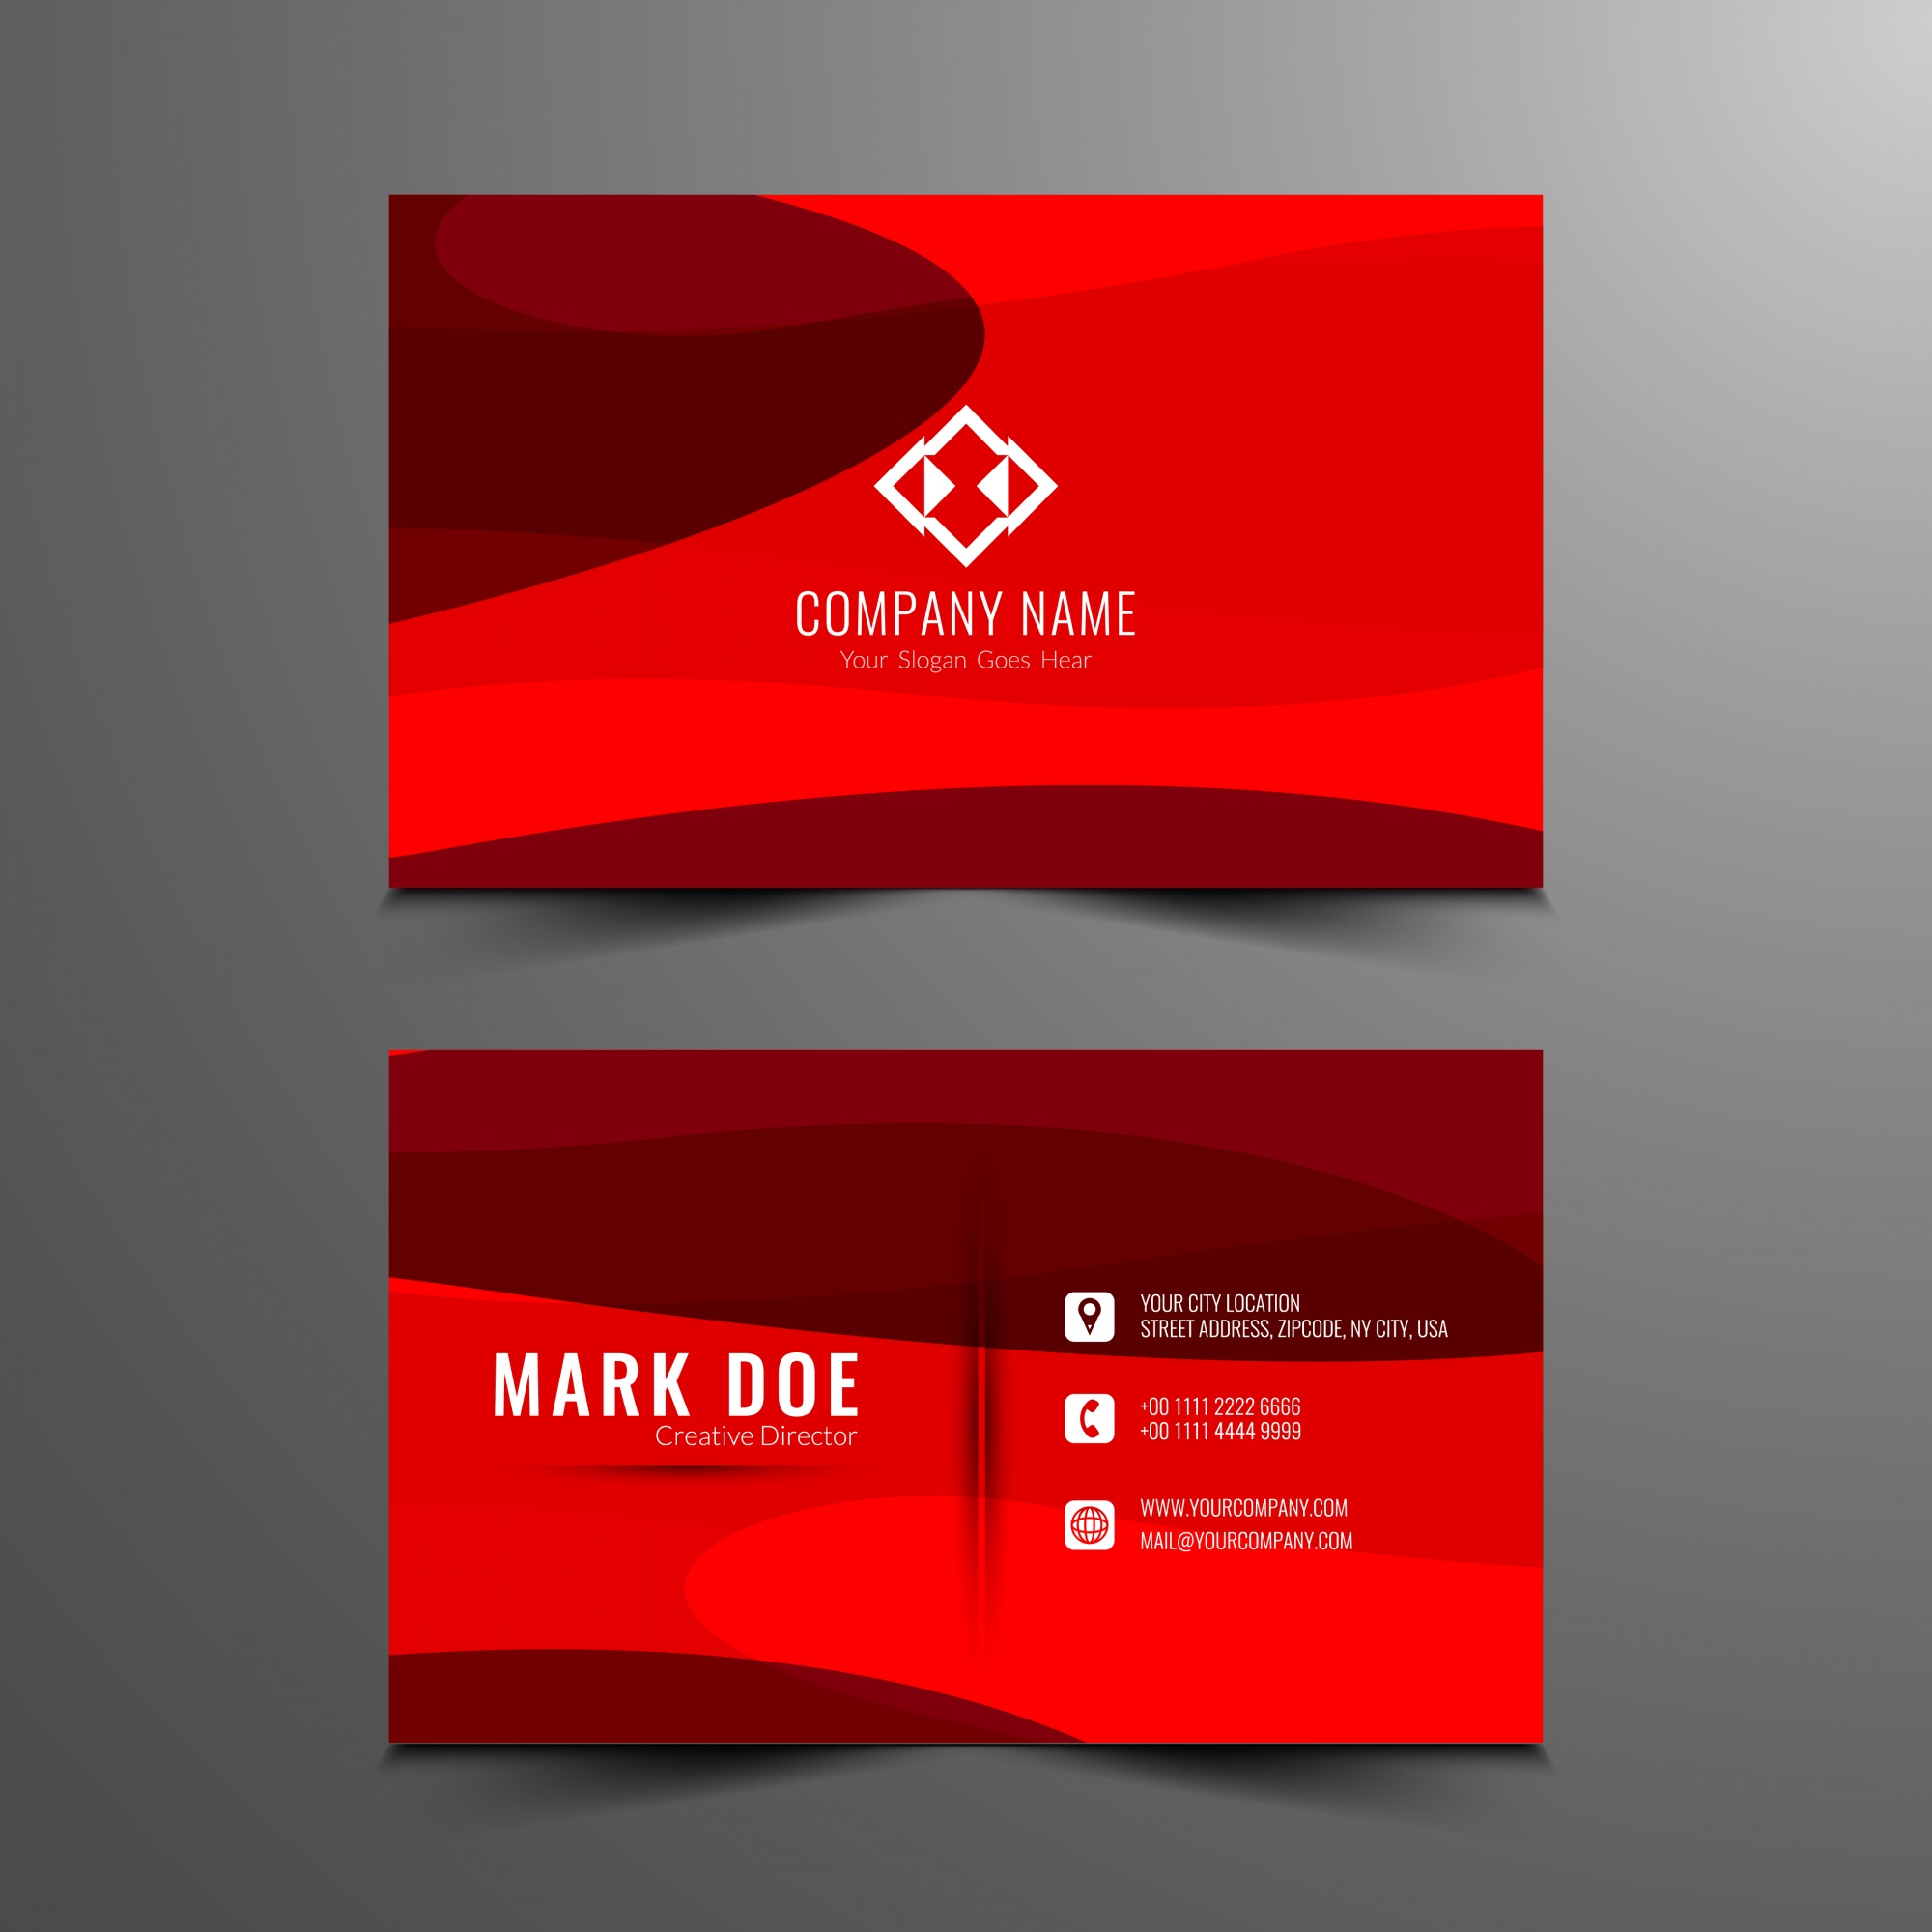 Abstract red color business card design